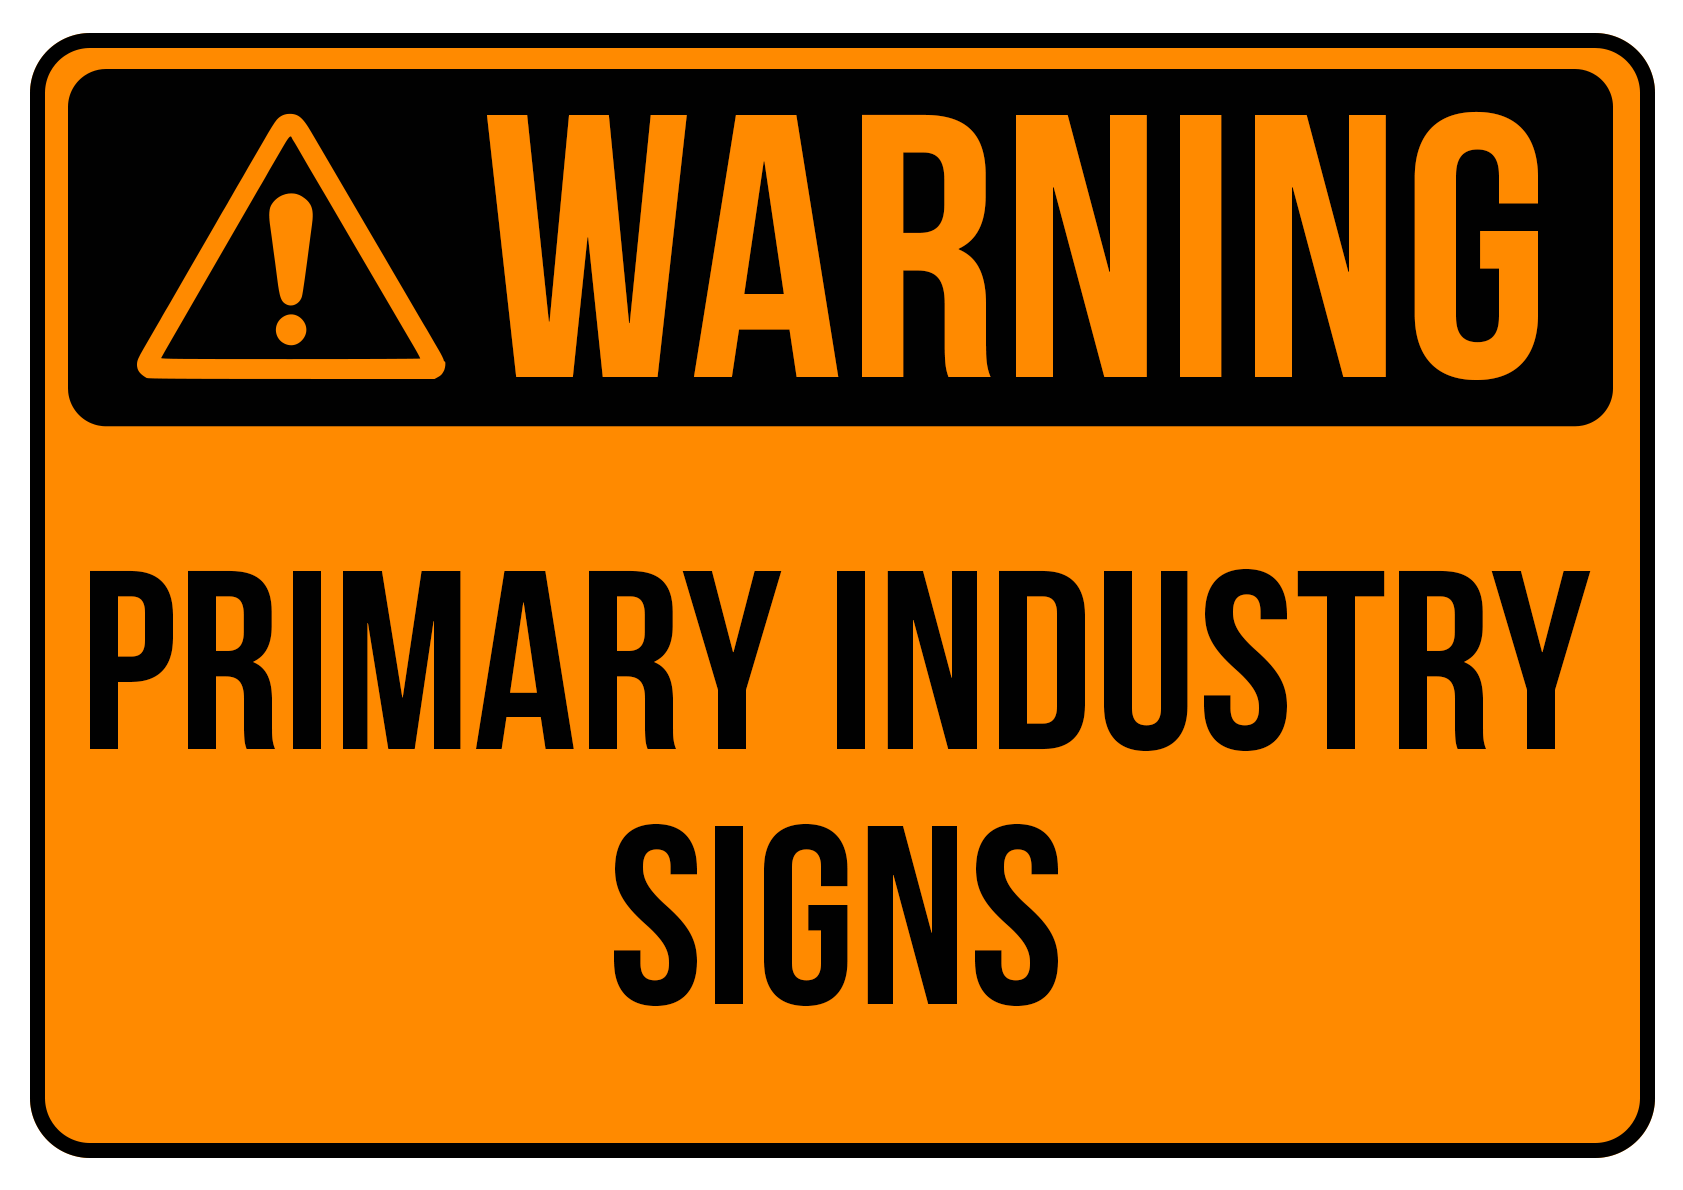 Primary Industry Signs